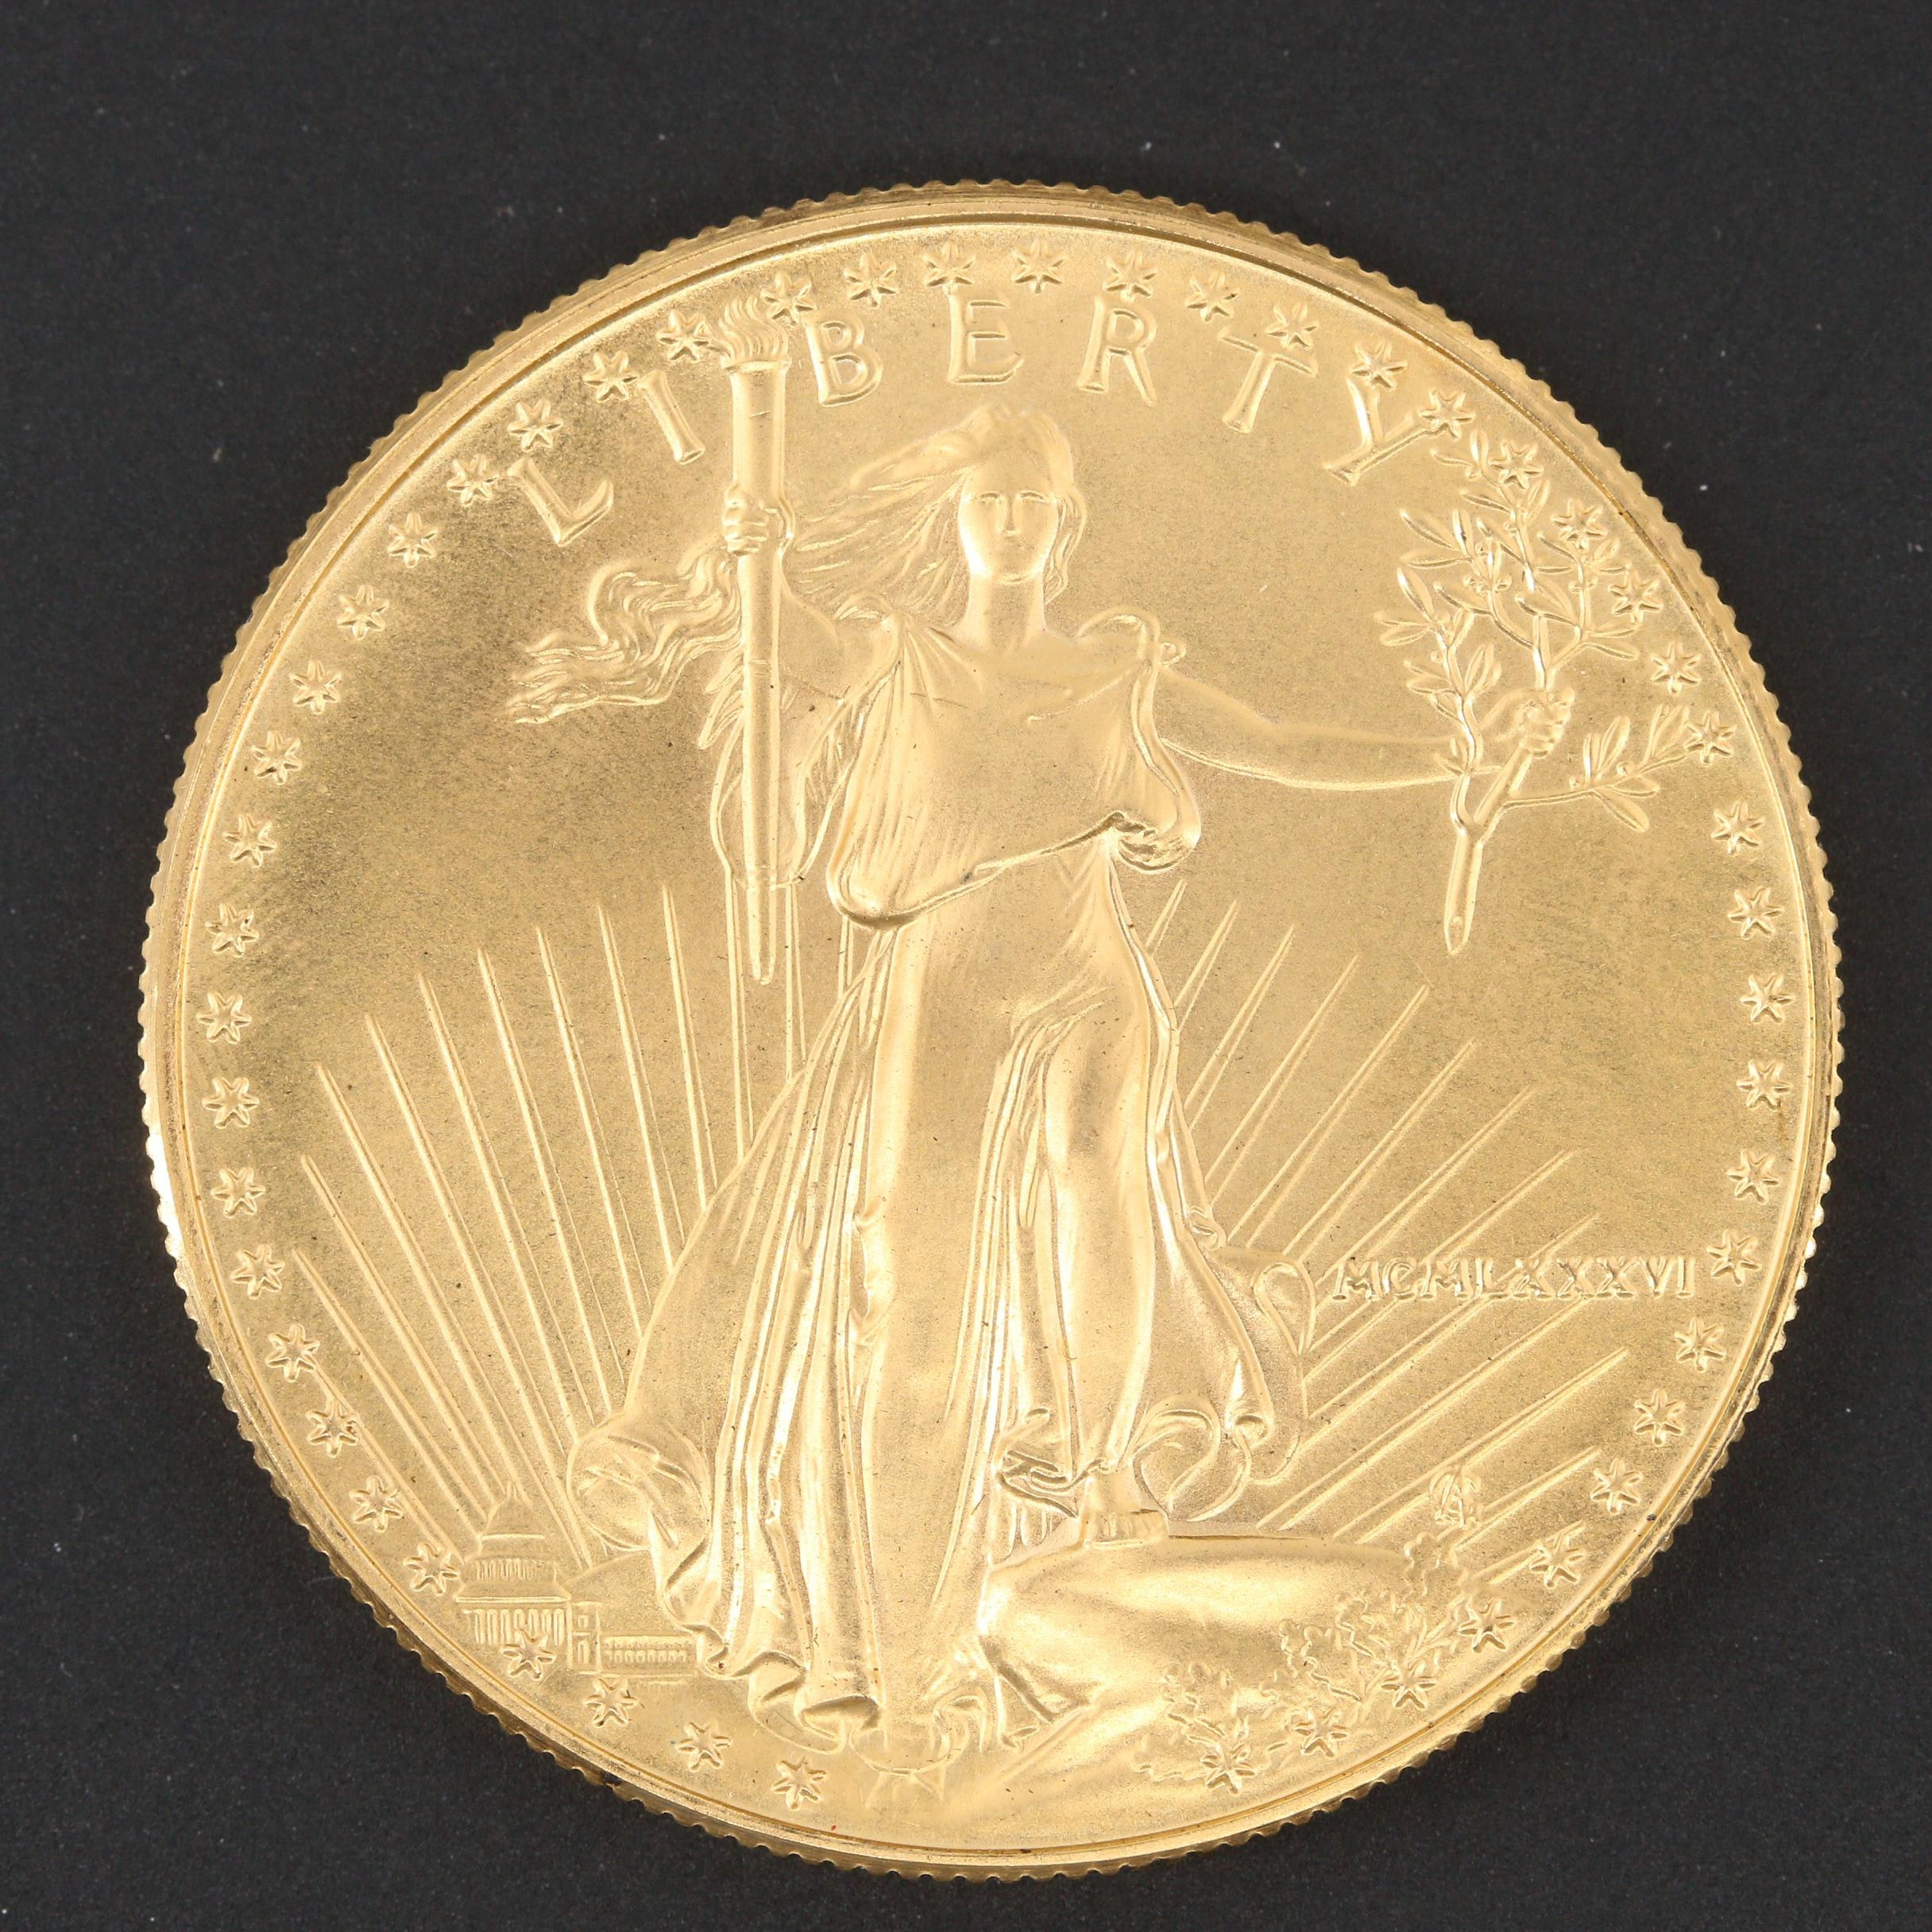 1986 First Year of Issue $50 Gold American Eagle